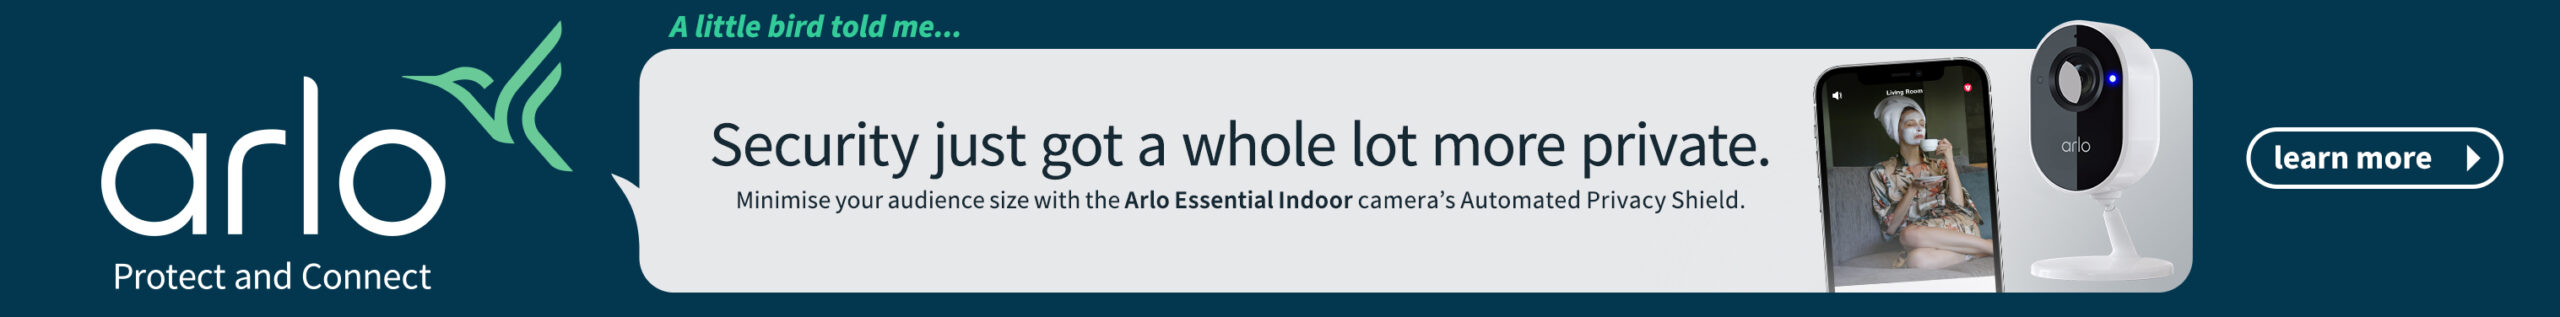 ARL0355 Arlo ESS Indoor Generic Banner 728x90 V4 scaled Dicks Boss: We Want to Be Accessories King